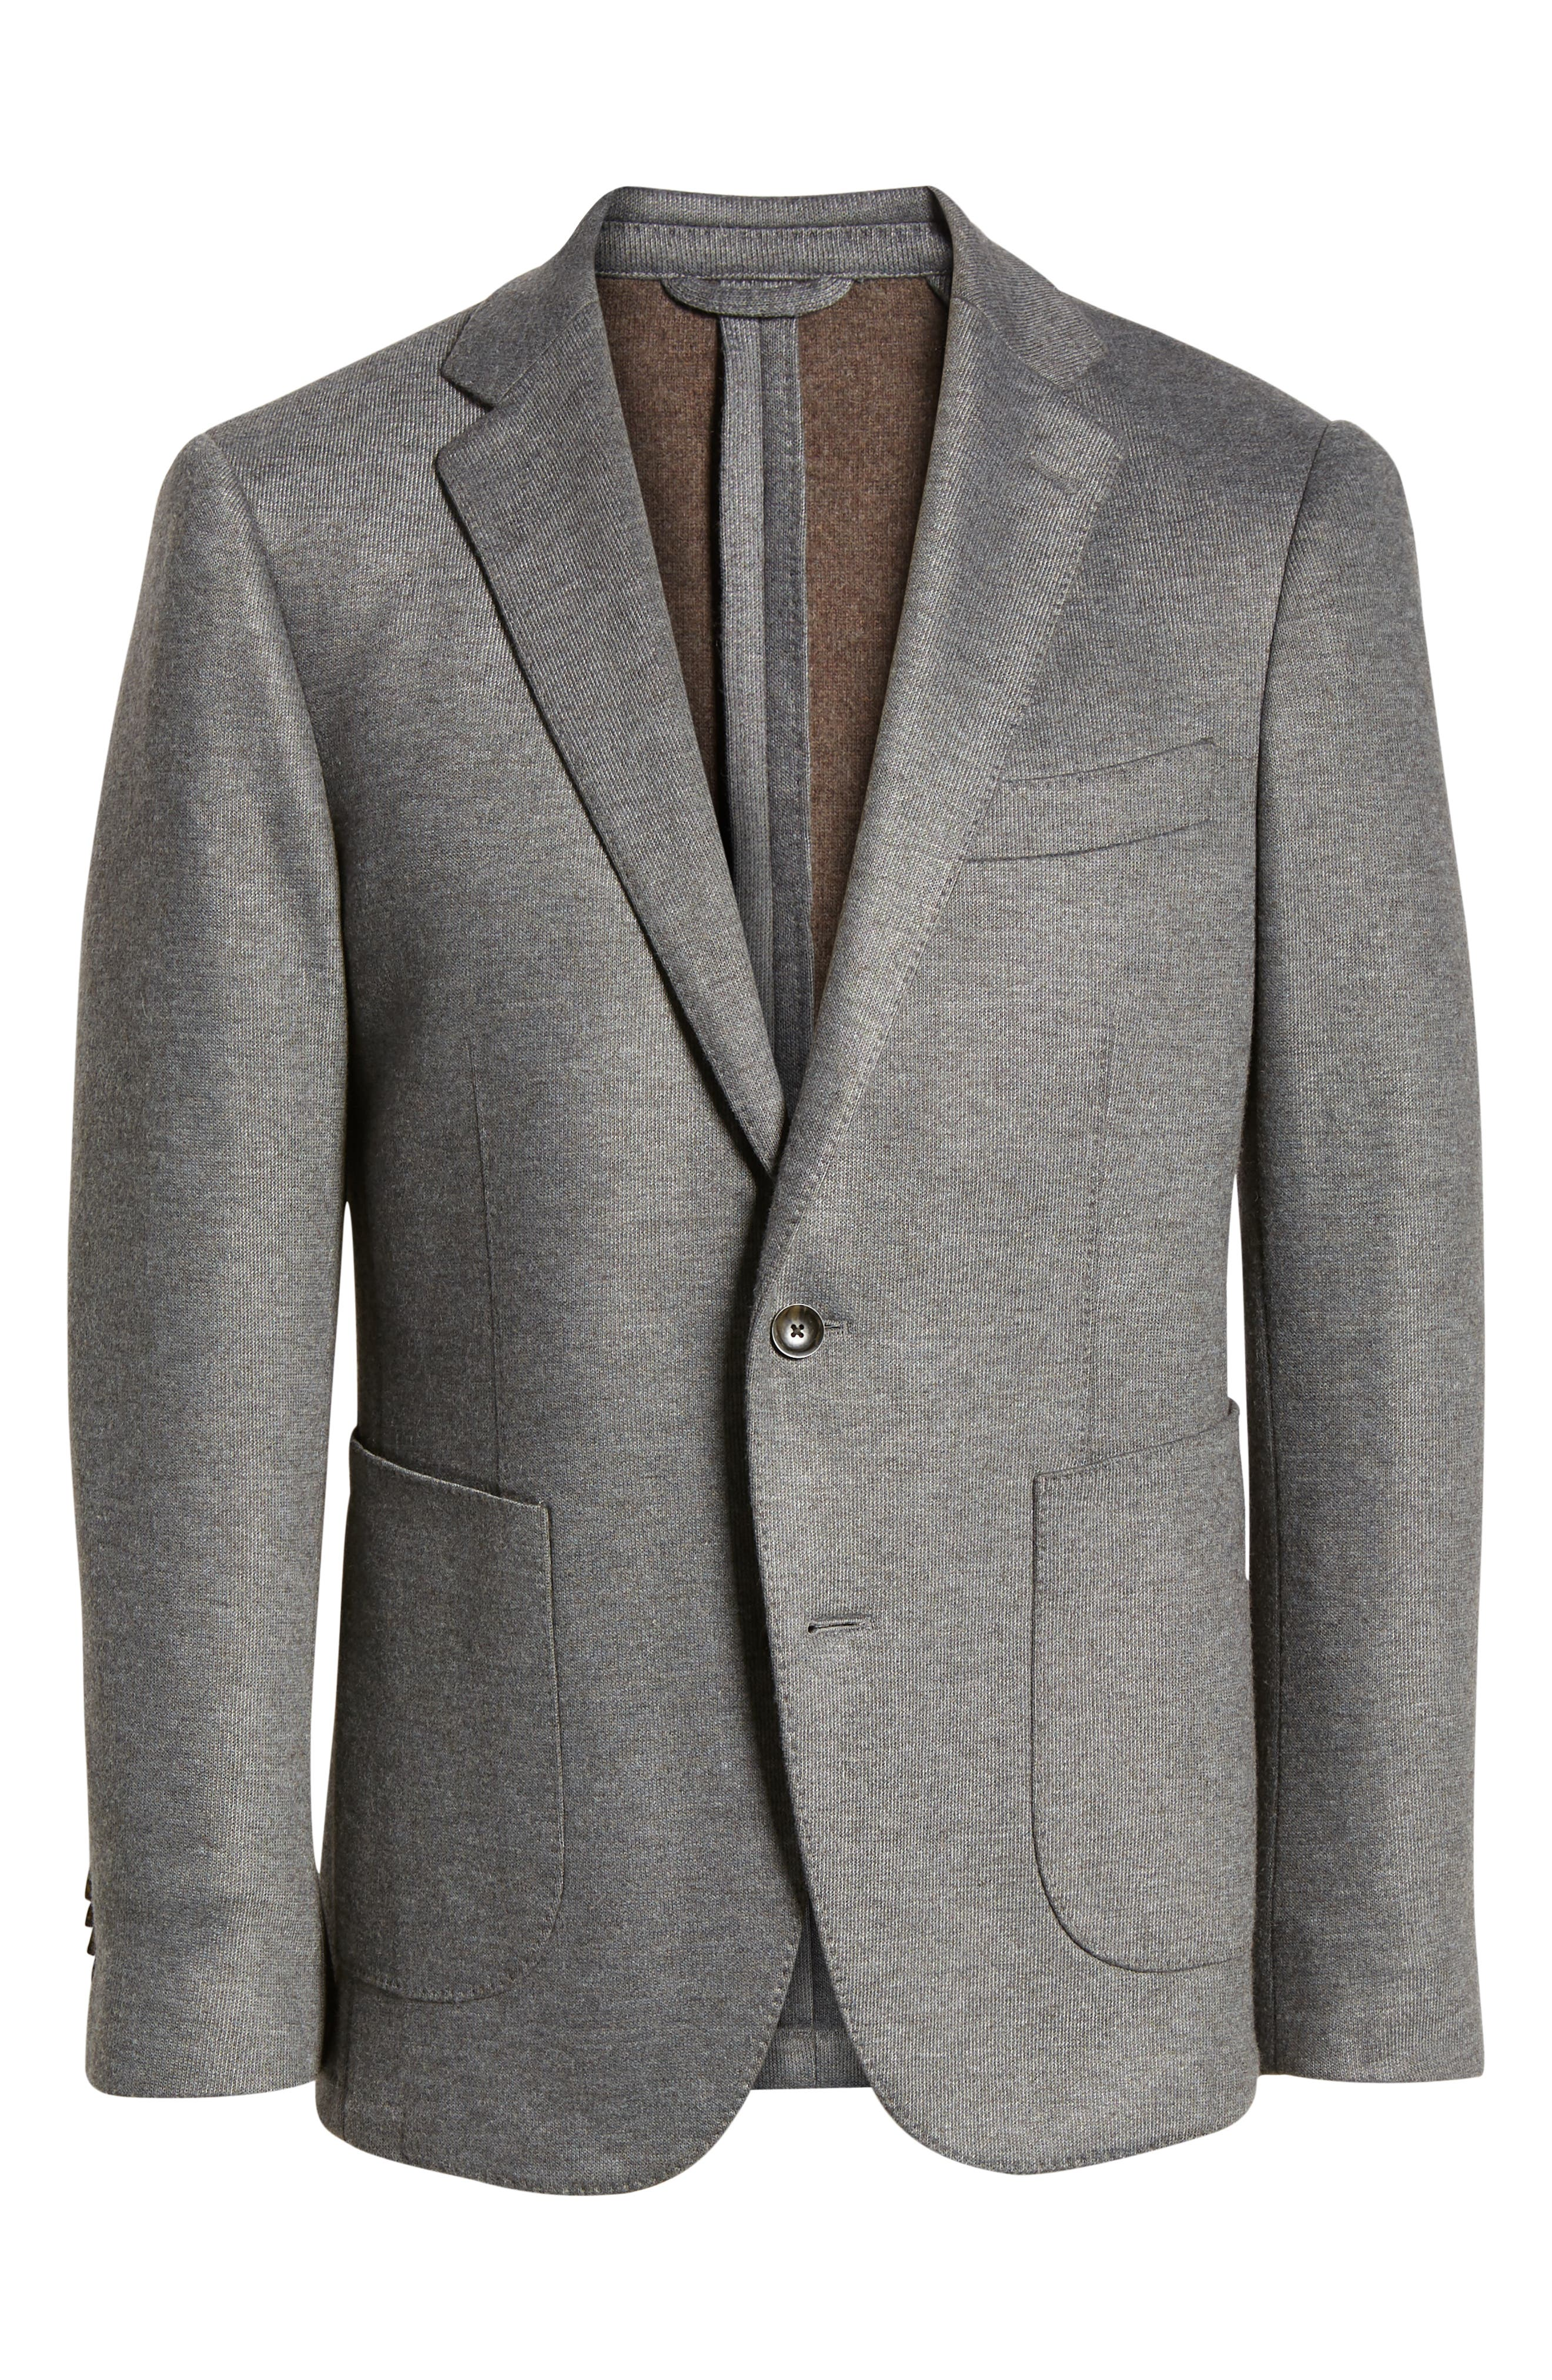 RODD & GUNN, Brooklynn Sport Coat, Alternate thumbnail 5, color, ASH